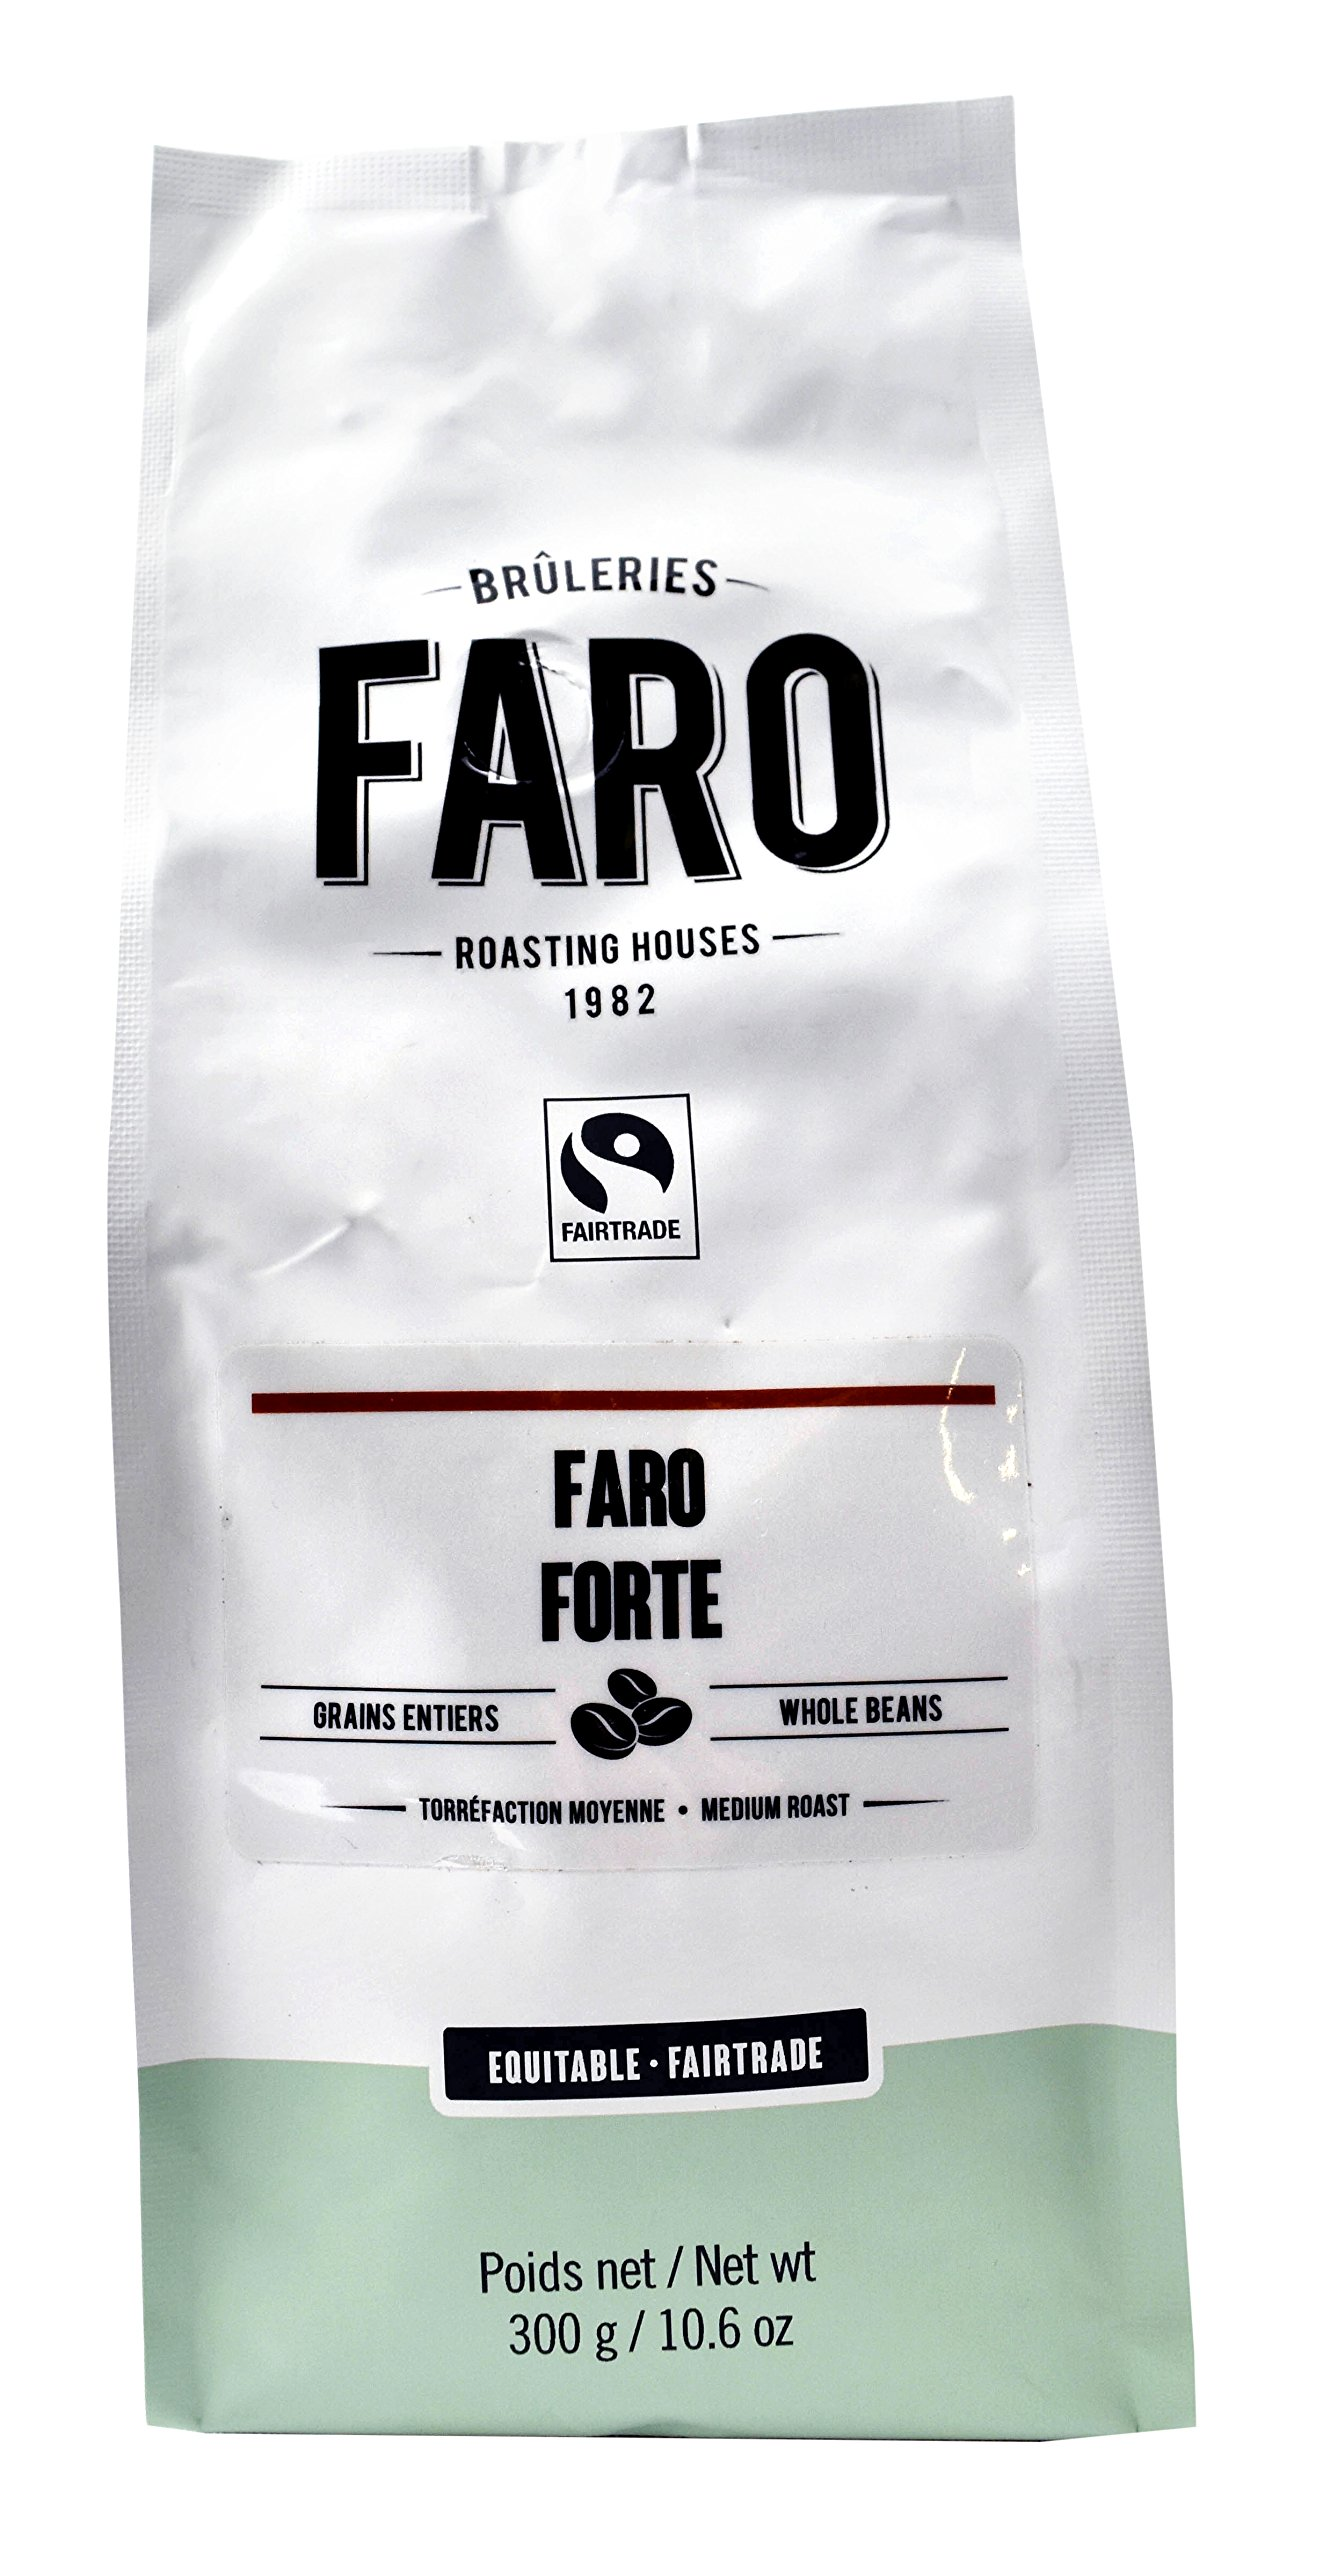 Faro Roasting House Forte Espresso Blend Whole Coffee Beans 10oz, Classic Delicious Neapolitan Blend Coffee, Certified Organic and Fair Trade - Fresh Medium Roast Whole Bean Coffee (10 Ounce Bag)